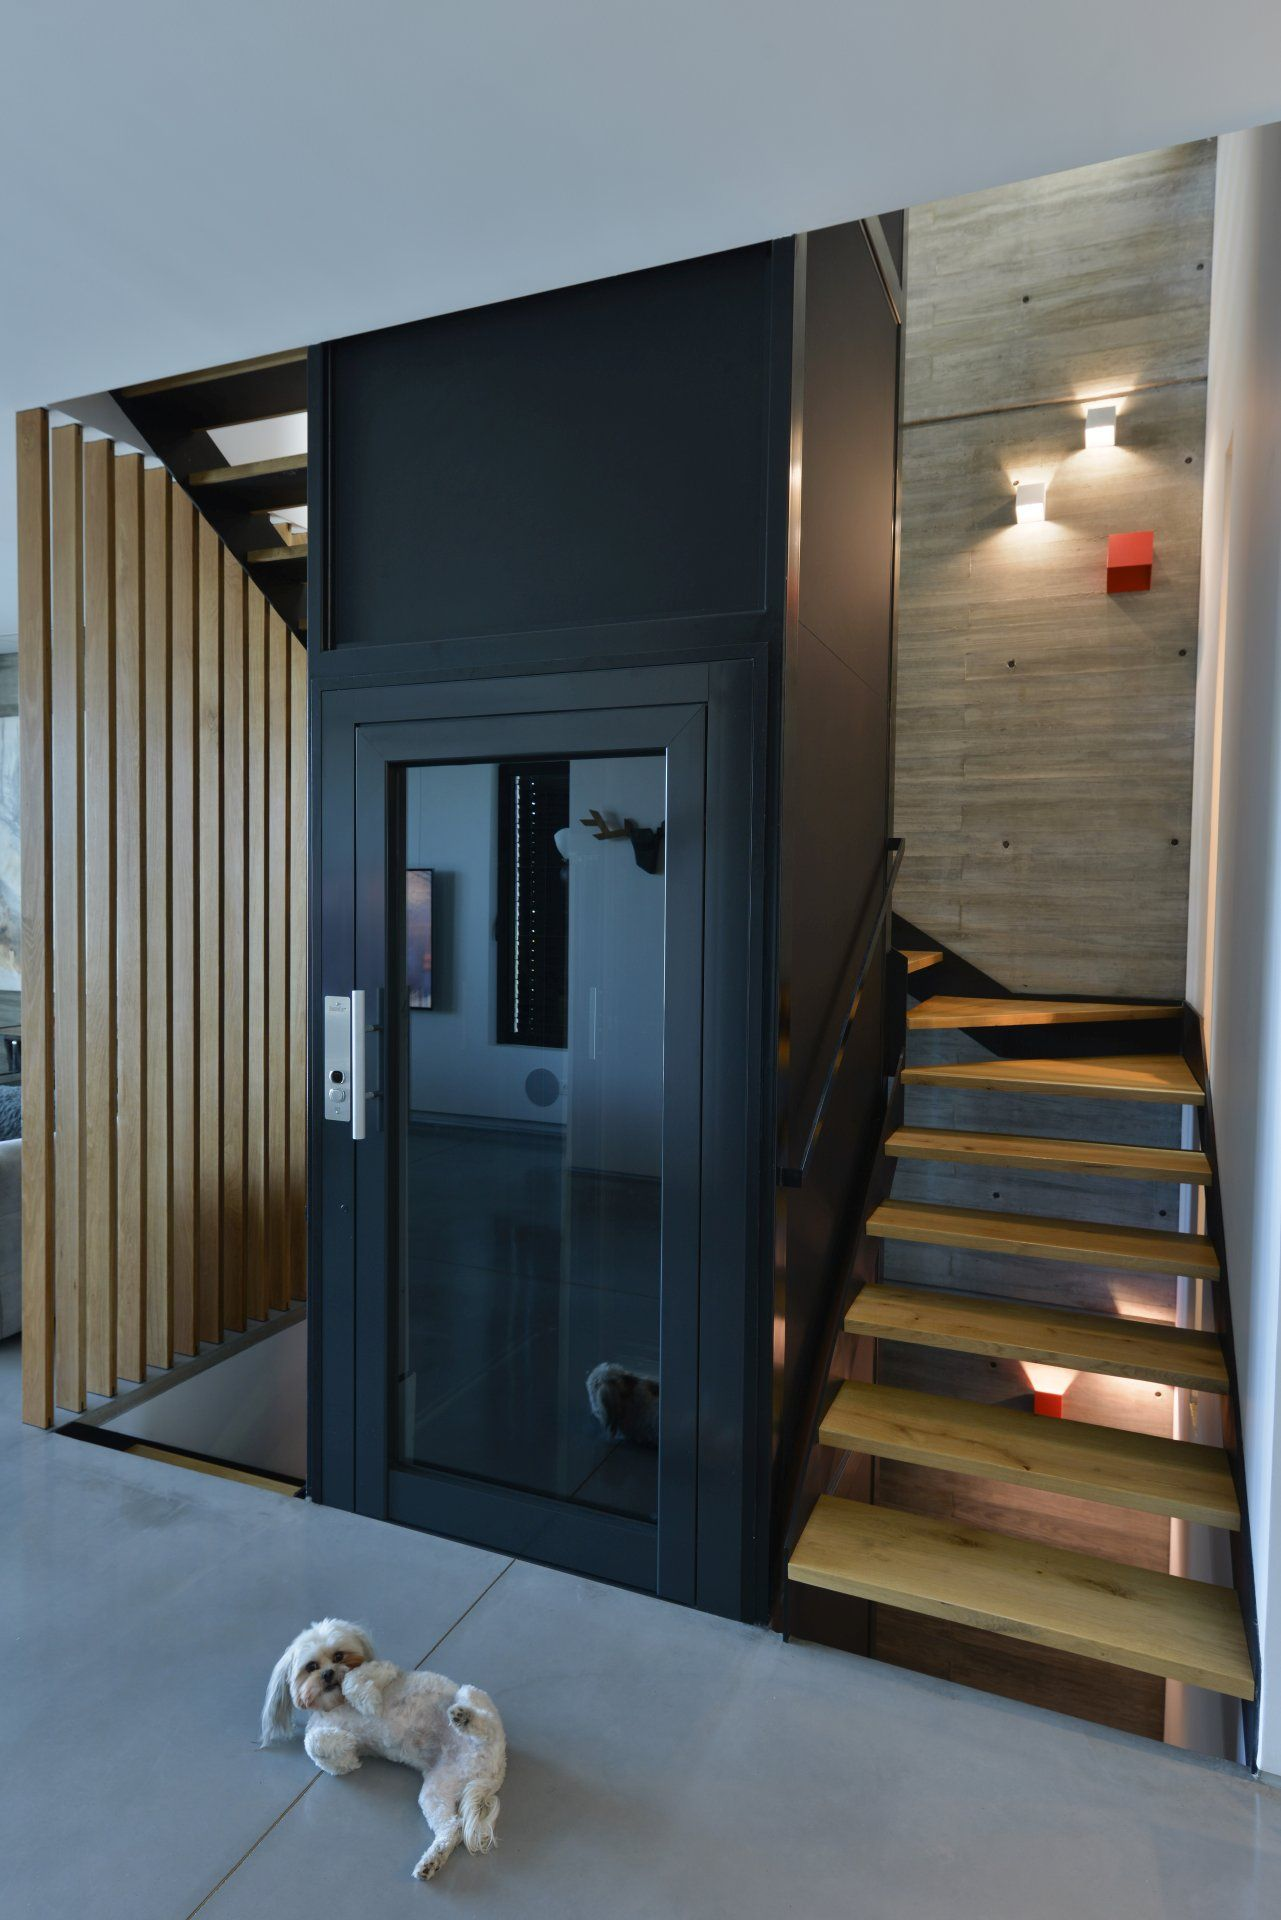 Iron Stairs Wrapped In Wood Around The Elevator House Lift   Lift And Staircase Design   Stair Railing   Glass Elevator   U Shaped Staircase   Staircase Ideas   Staircase Remodel